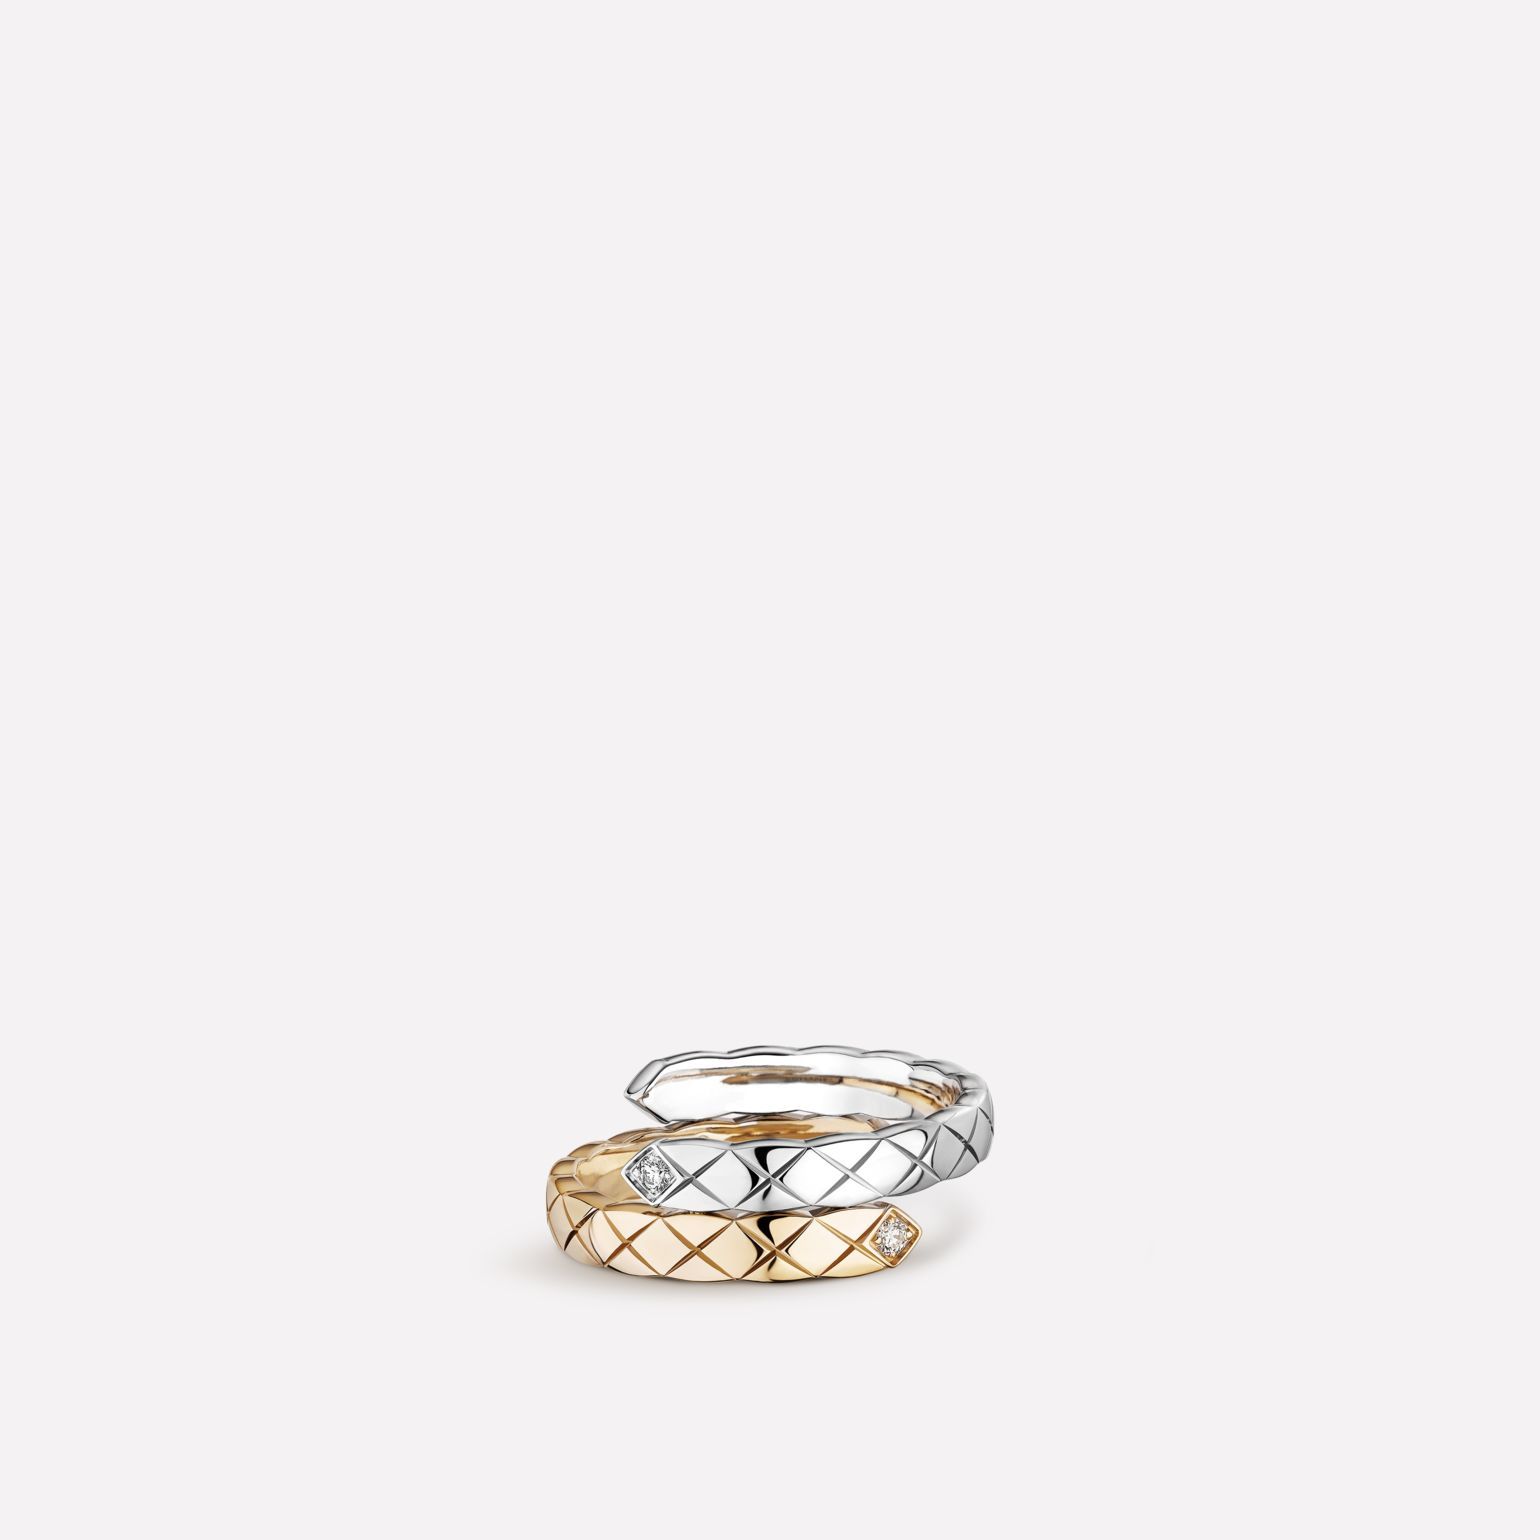 Coco Crush Toi et Moi ring Quilted motif, small version, 18K white and BEIGE GOLD, diamonds